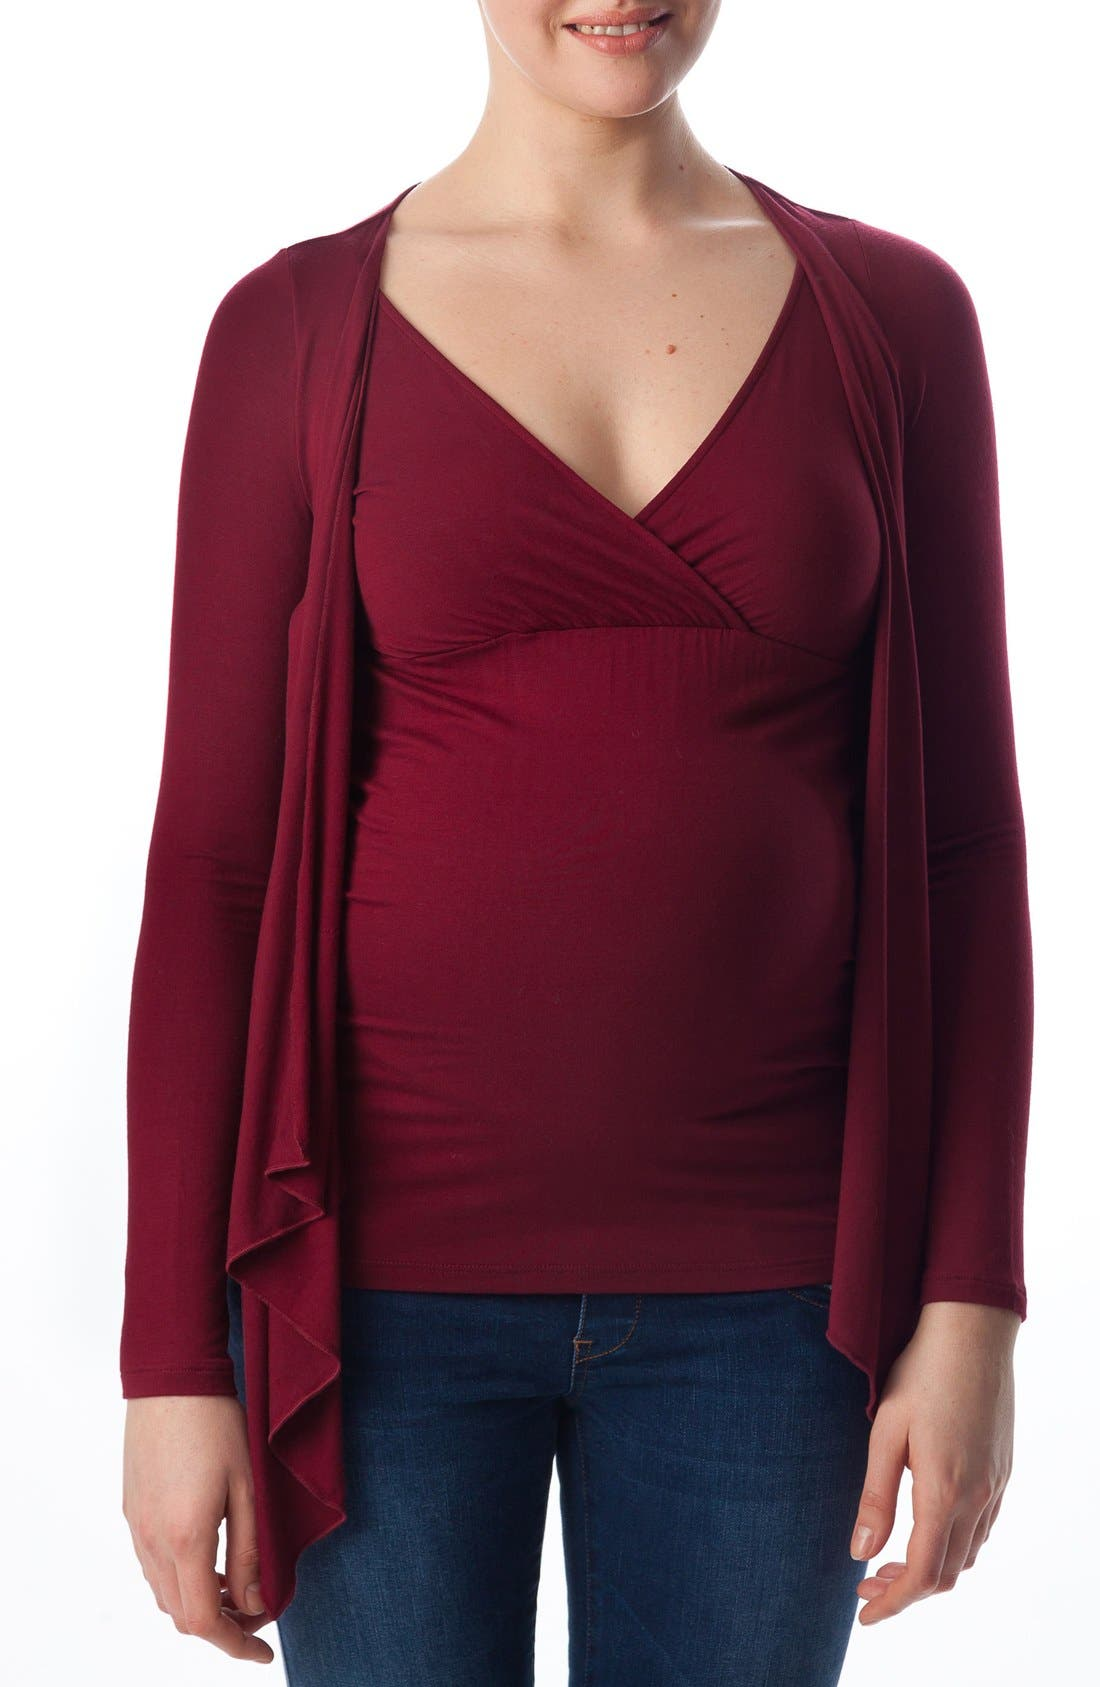 Anemone Maternity Wrap Top,                             Main thumbnail 1, color,                             Ruby Wine